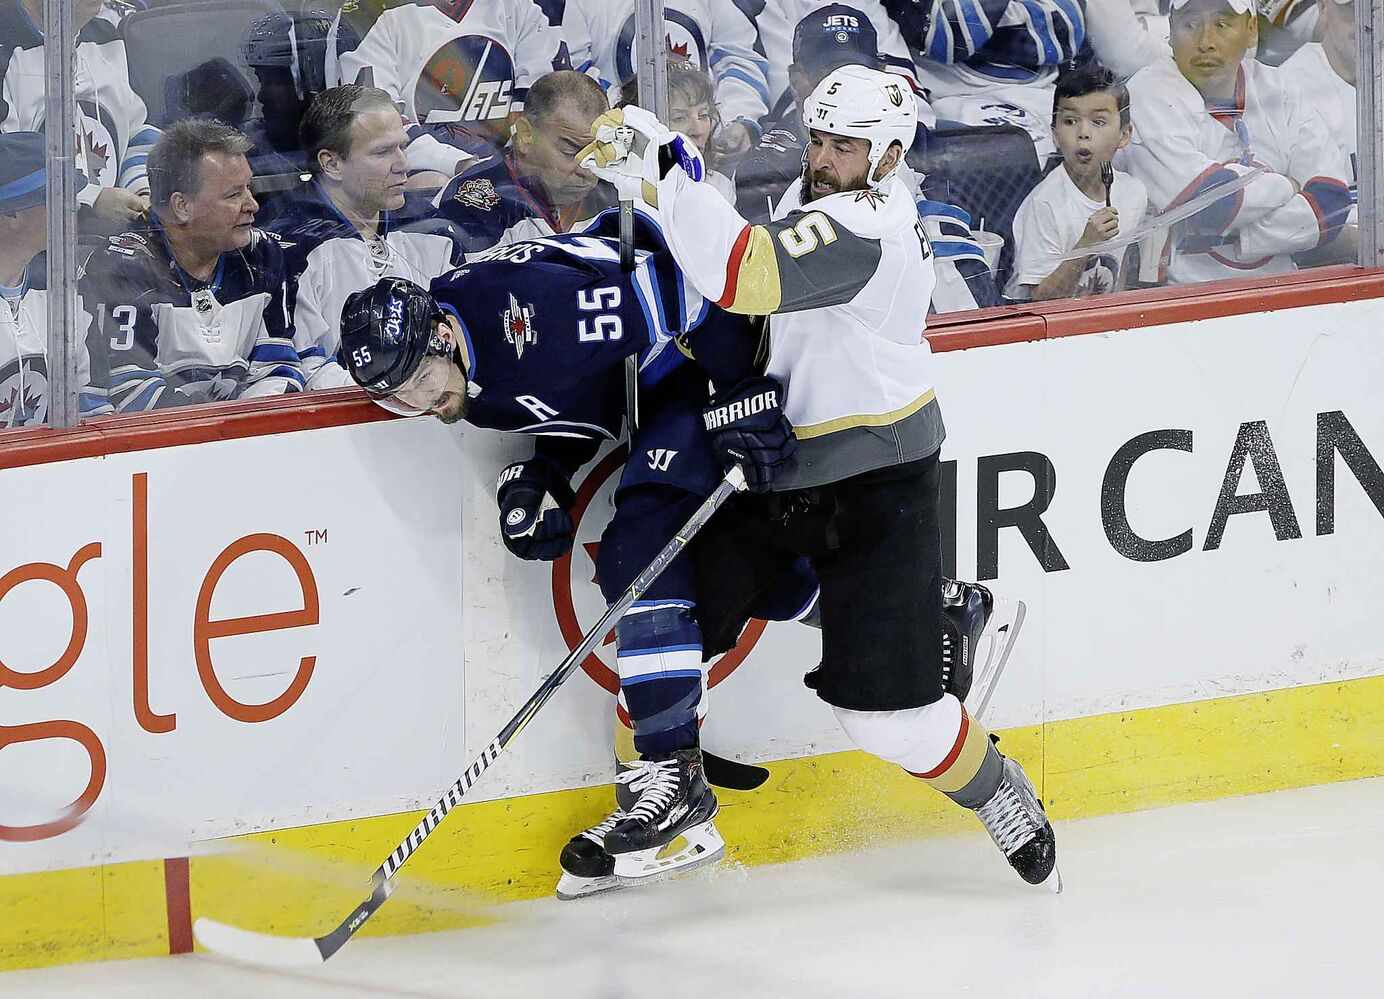 JOHN WOODS / THE CANADIAN PRESS</p><pVegas Golden Knights' Deryk Engelland (5) checks Winnipeg Jets' Mark Scheifele (55) during third period of game one action in the NHL Western Conference Final in Winnipeg on Saturday, May 12, 2018.</p>